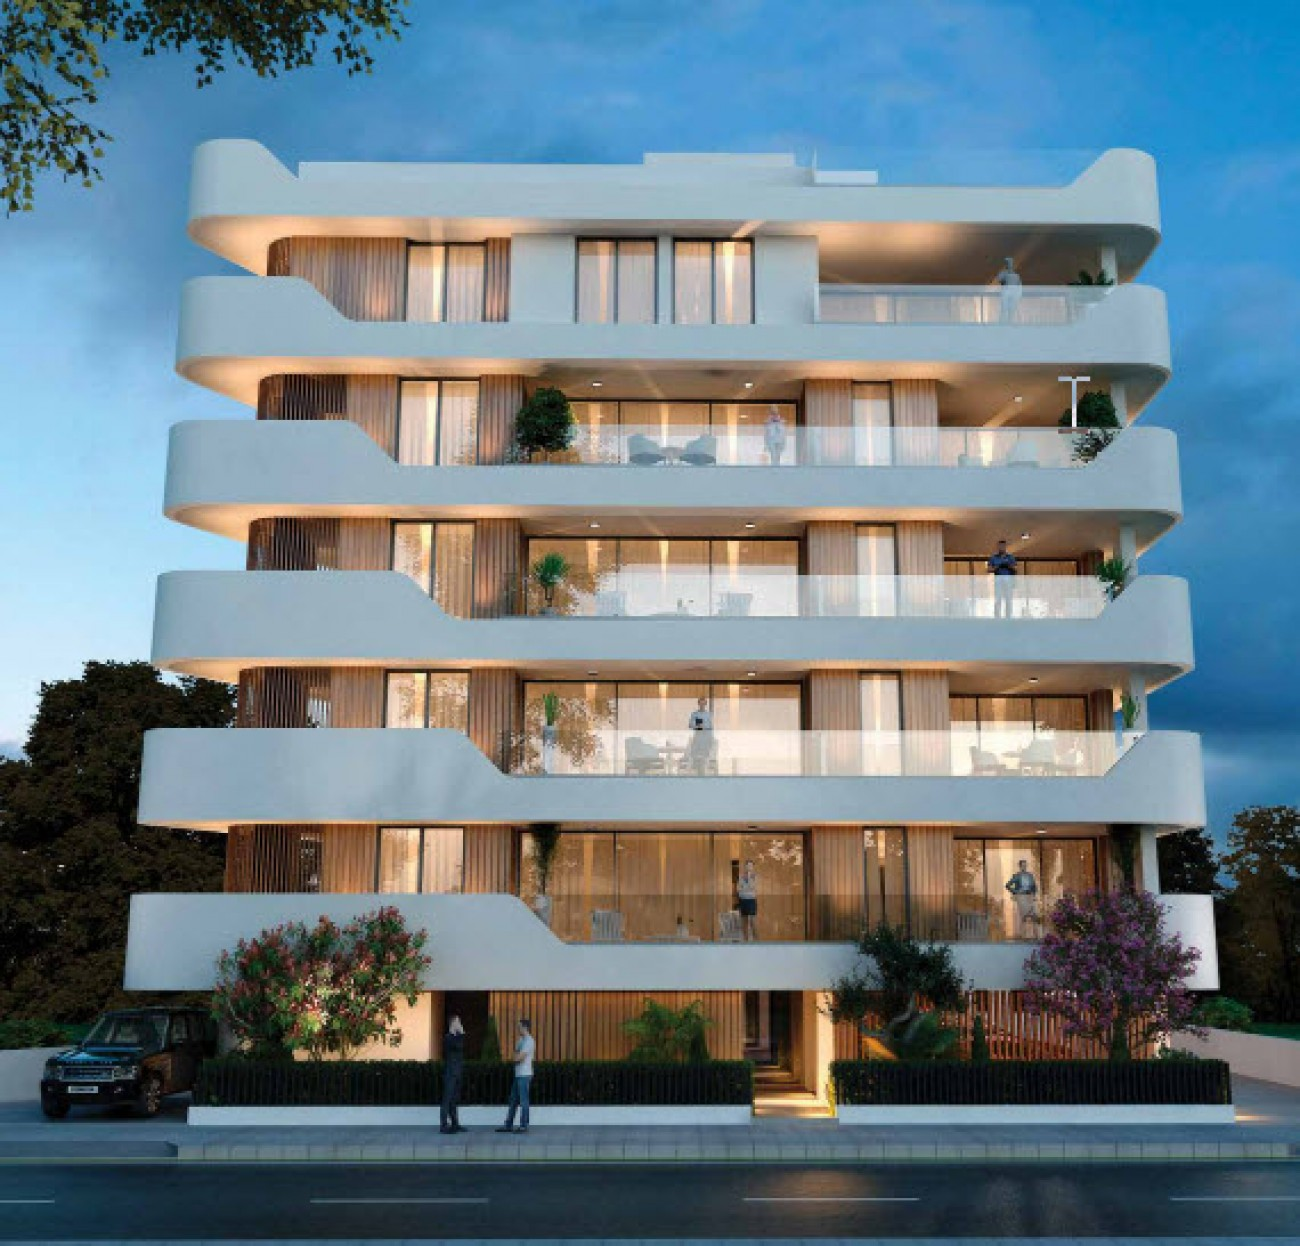 Apartment for Sale in Larnaka, Cyprus